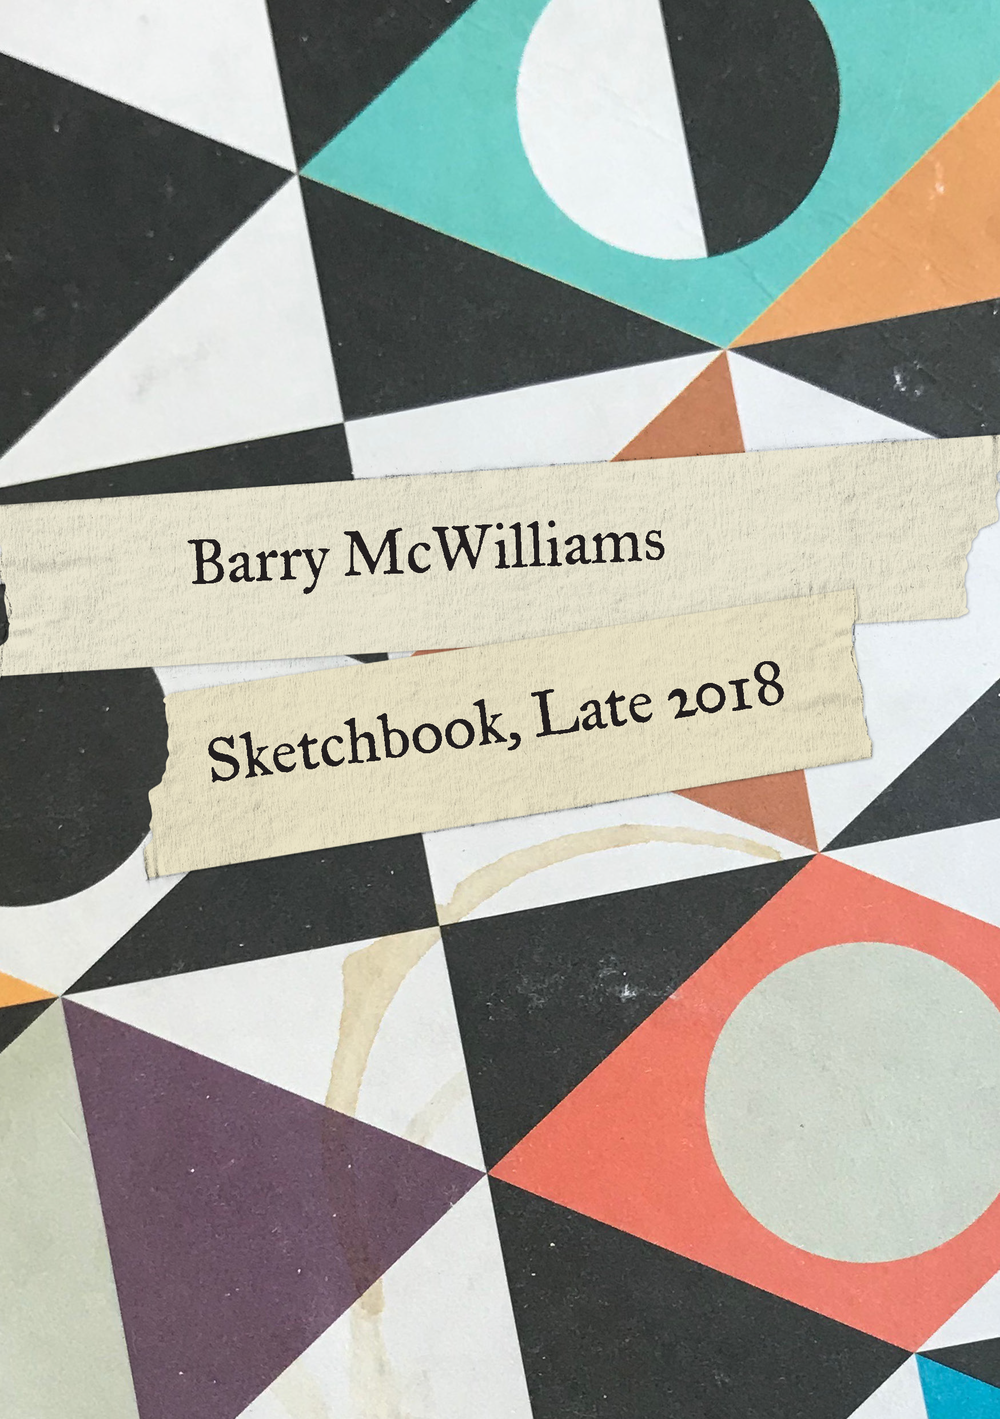 BarryMcWilliams Winter 2018 Sketchbook_Page_01.png